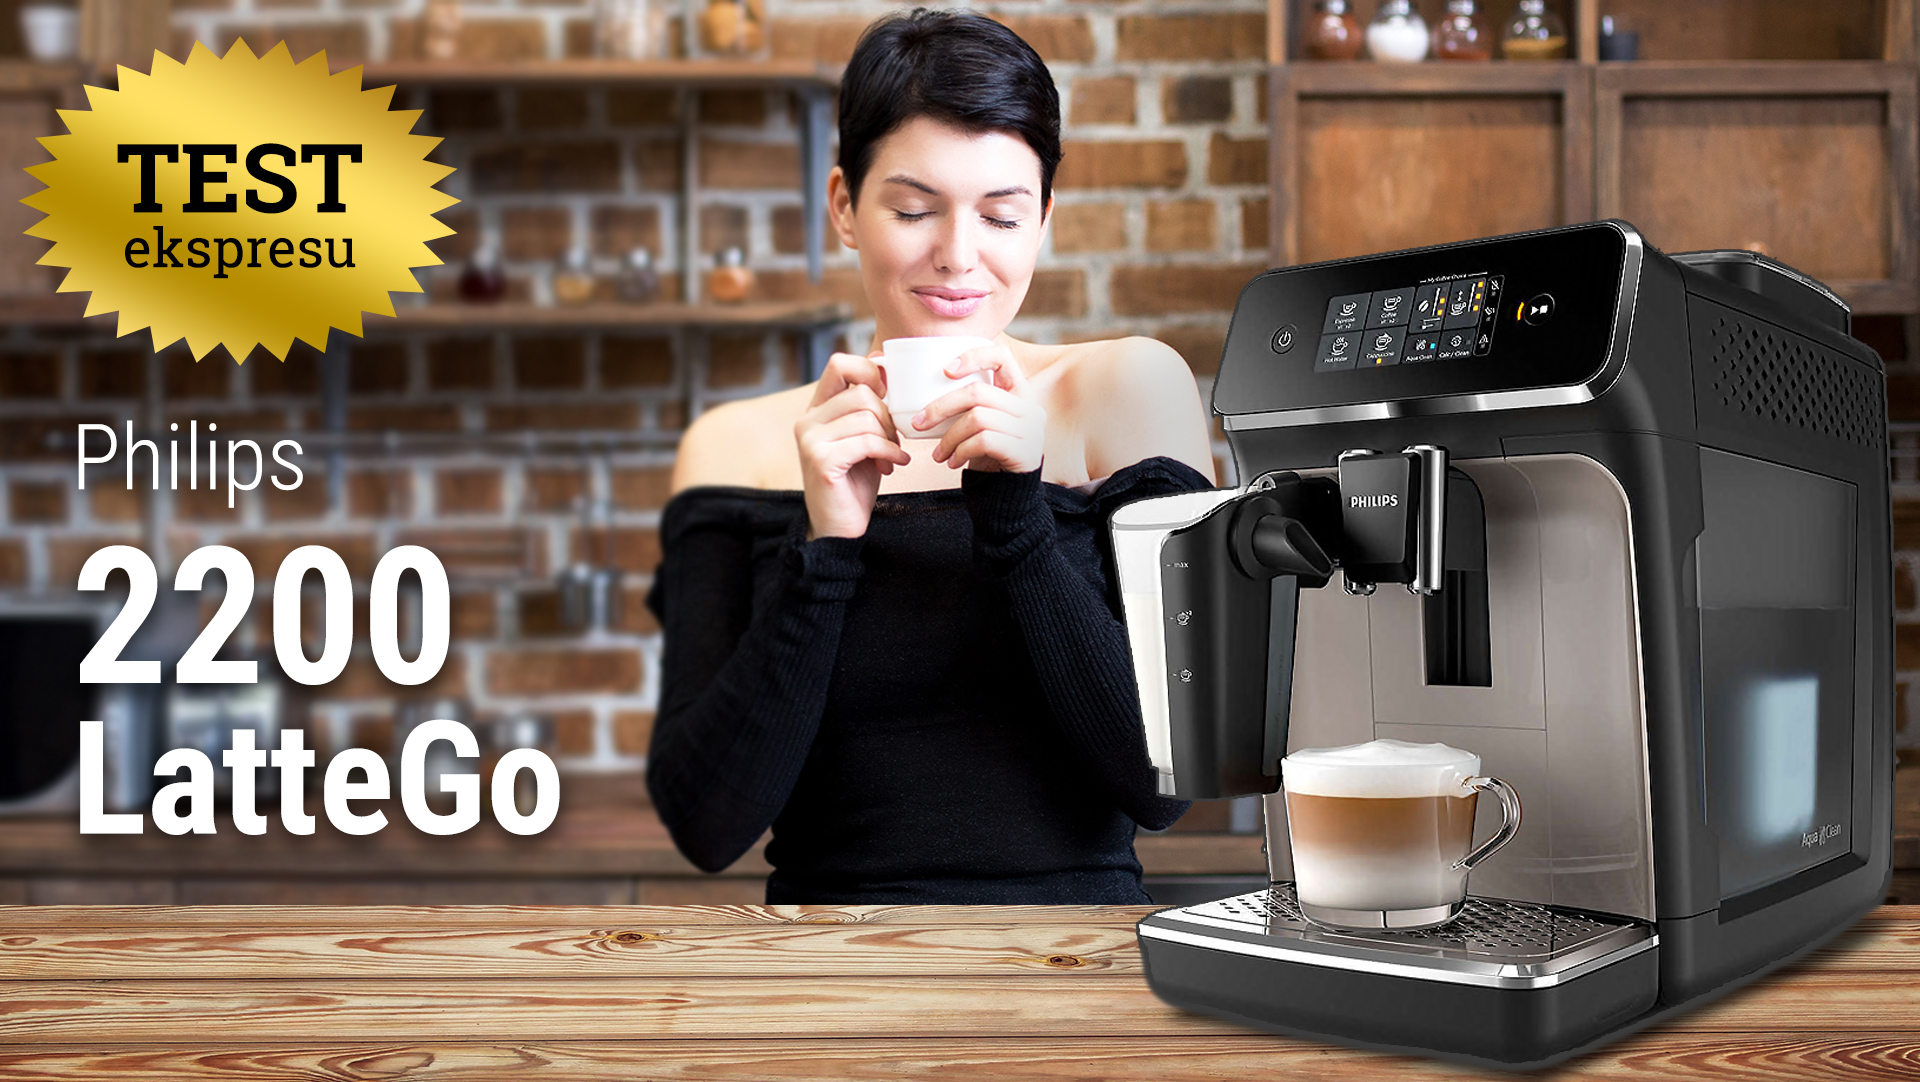 Test ekspresu do kawy Philips 2200 LatteGo